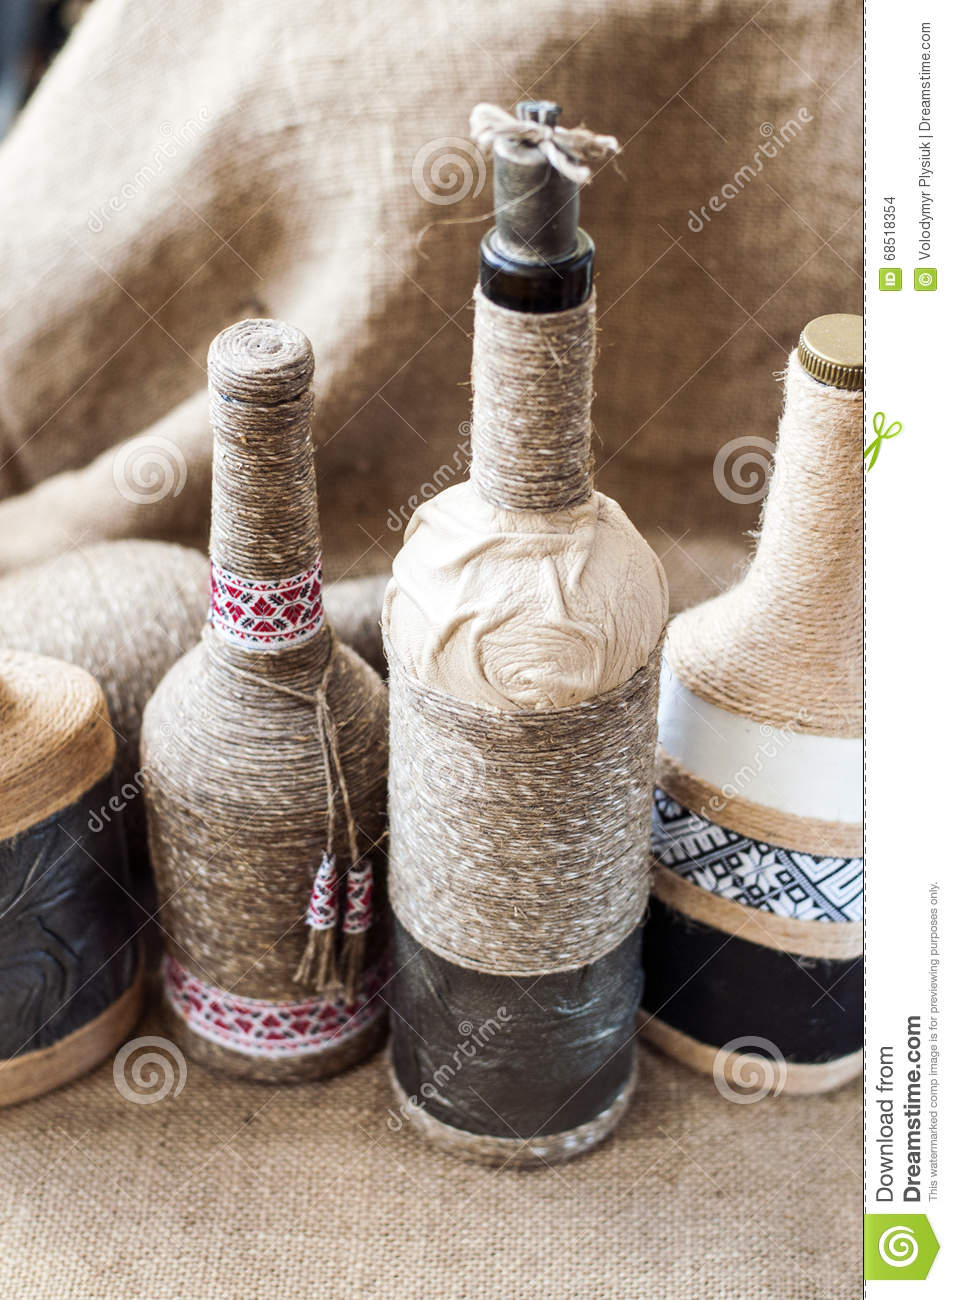 Decoration of bottles with twine 6